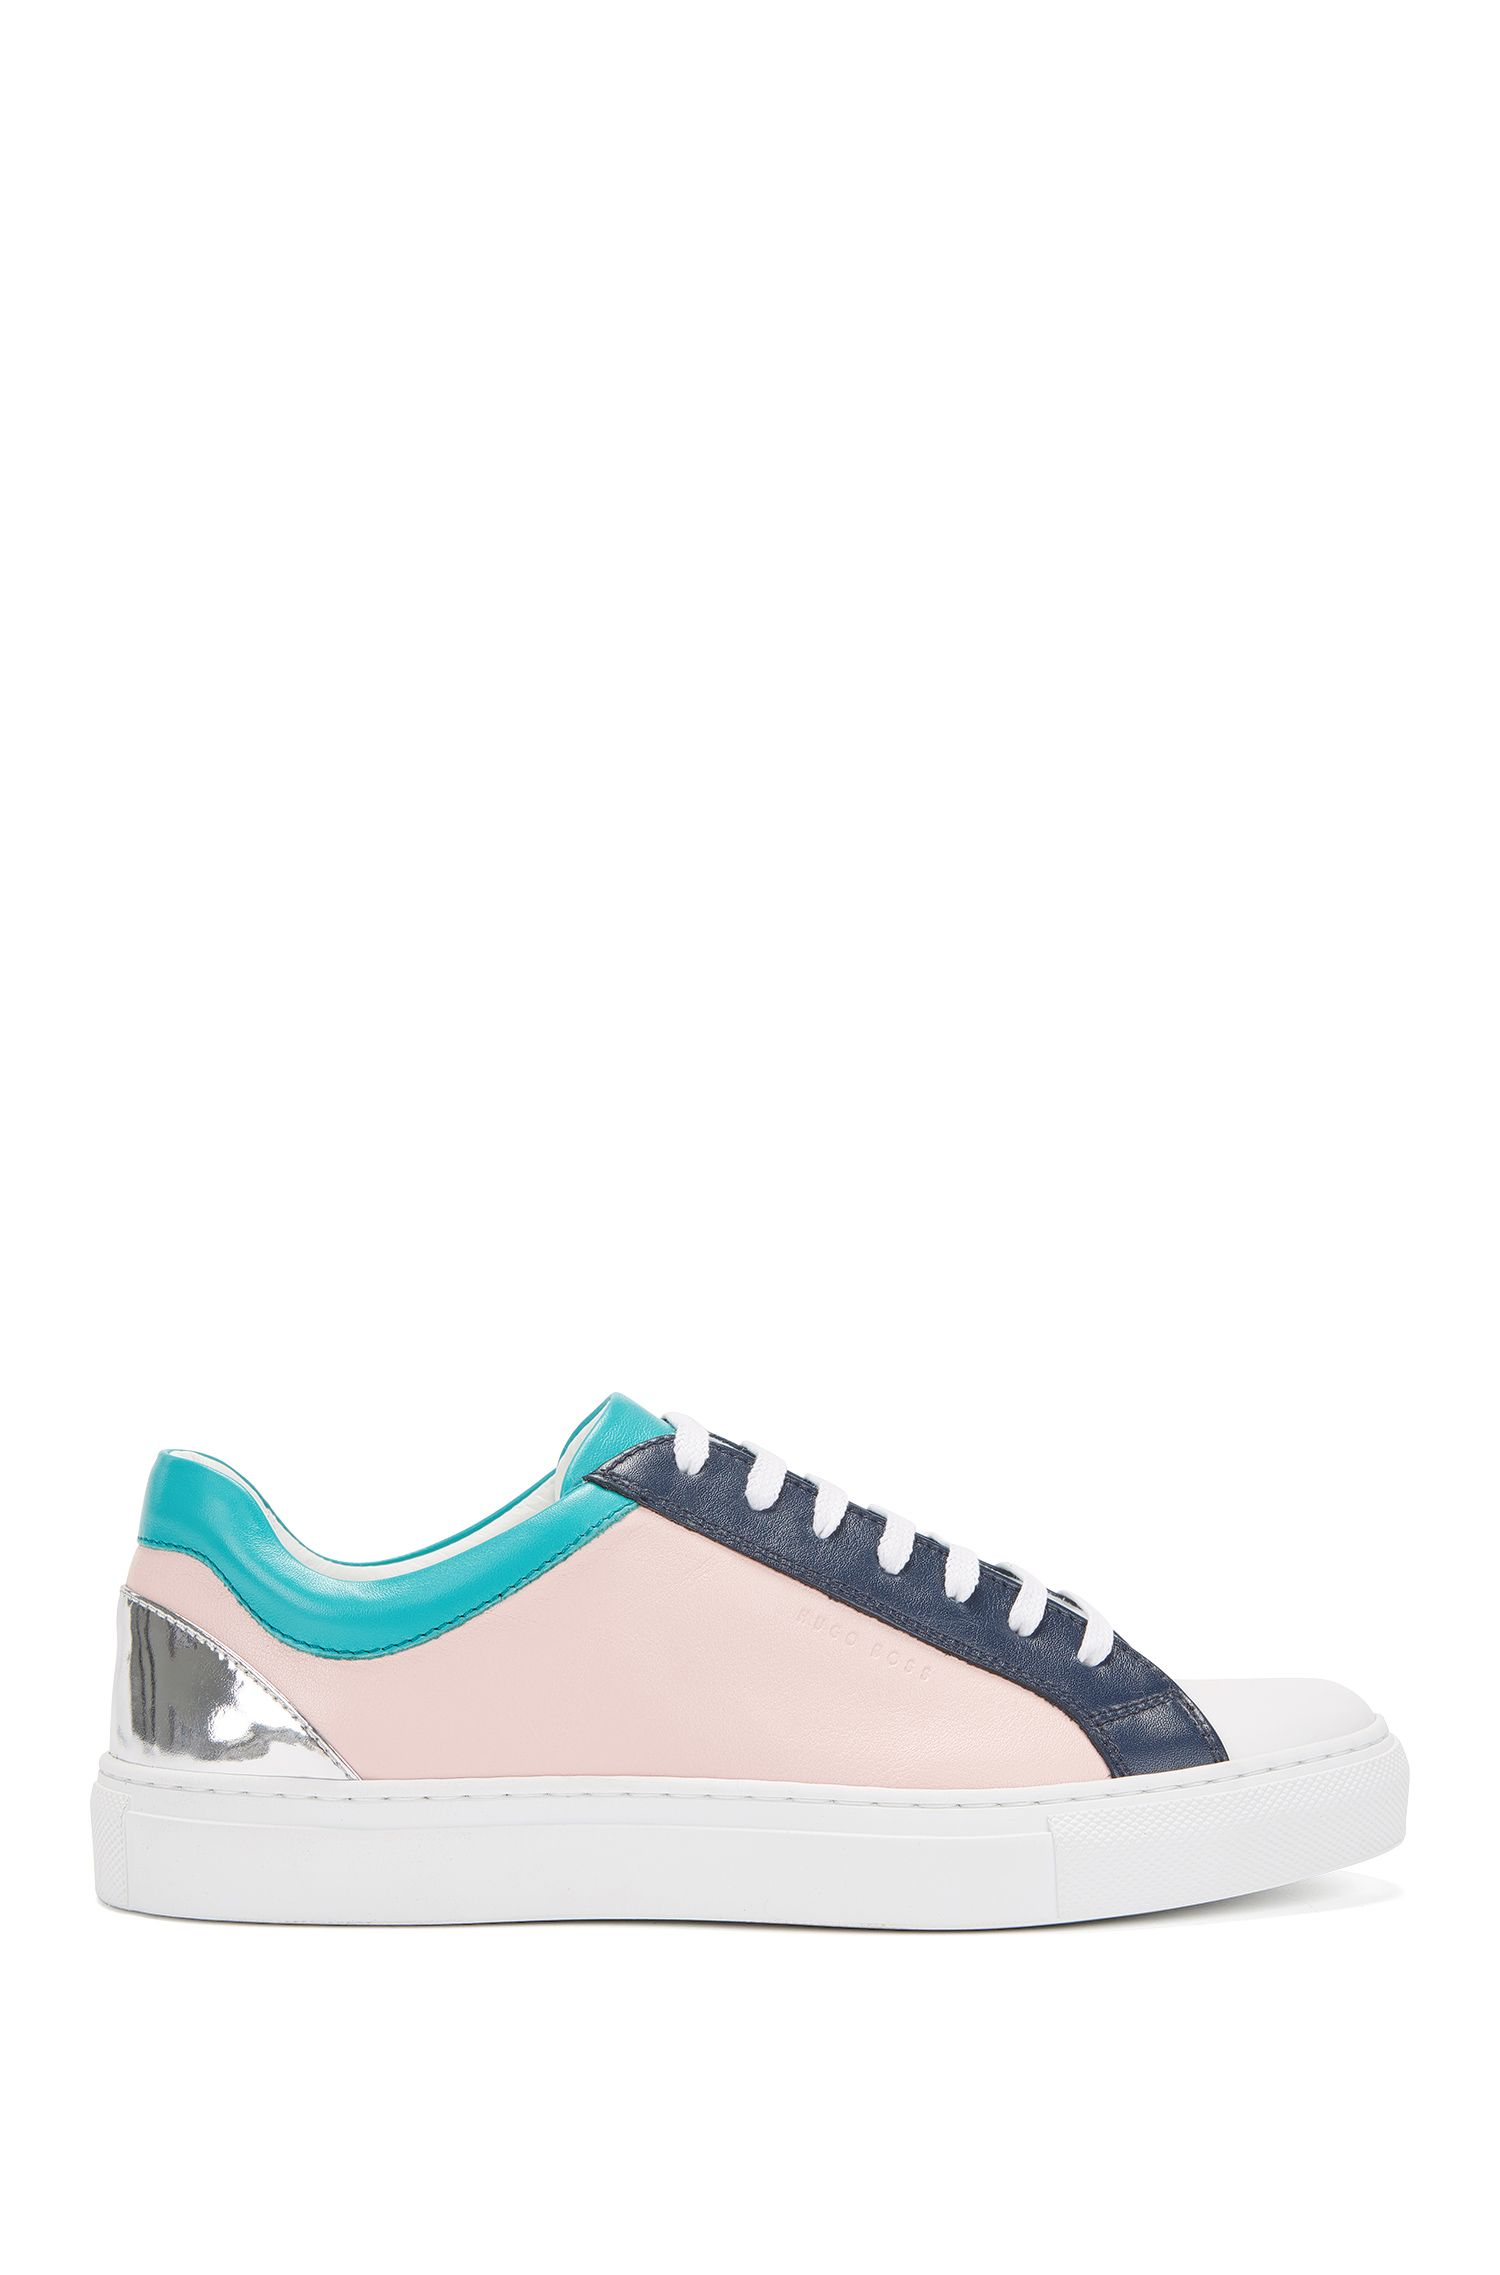 Gallery Collection Colorblocked Low-Cut Sneaker | Low Cut GC